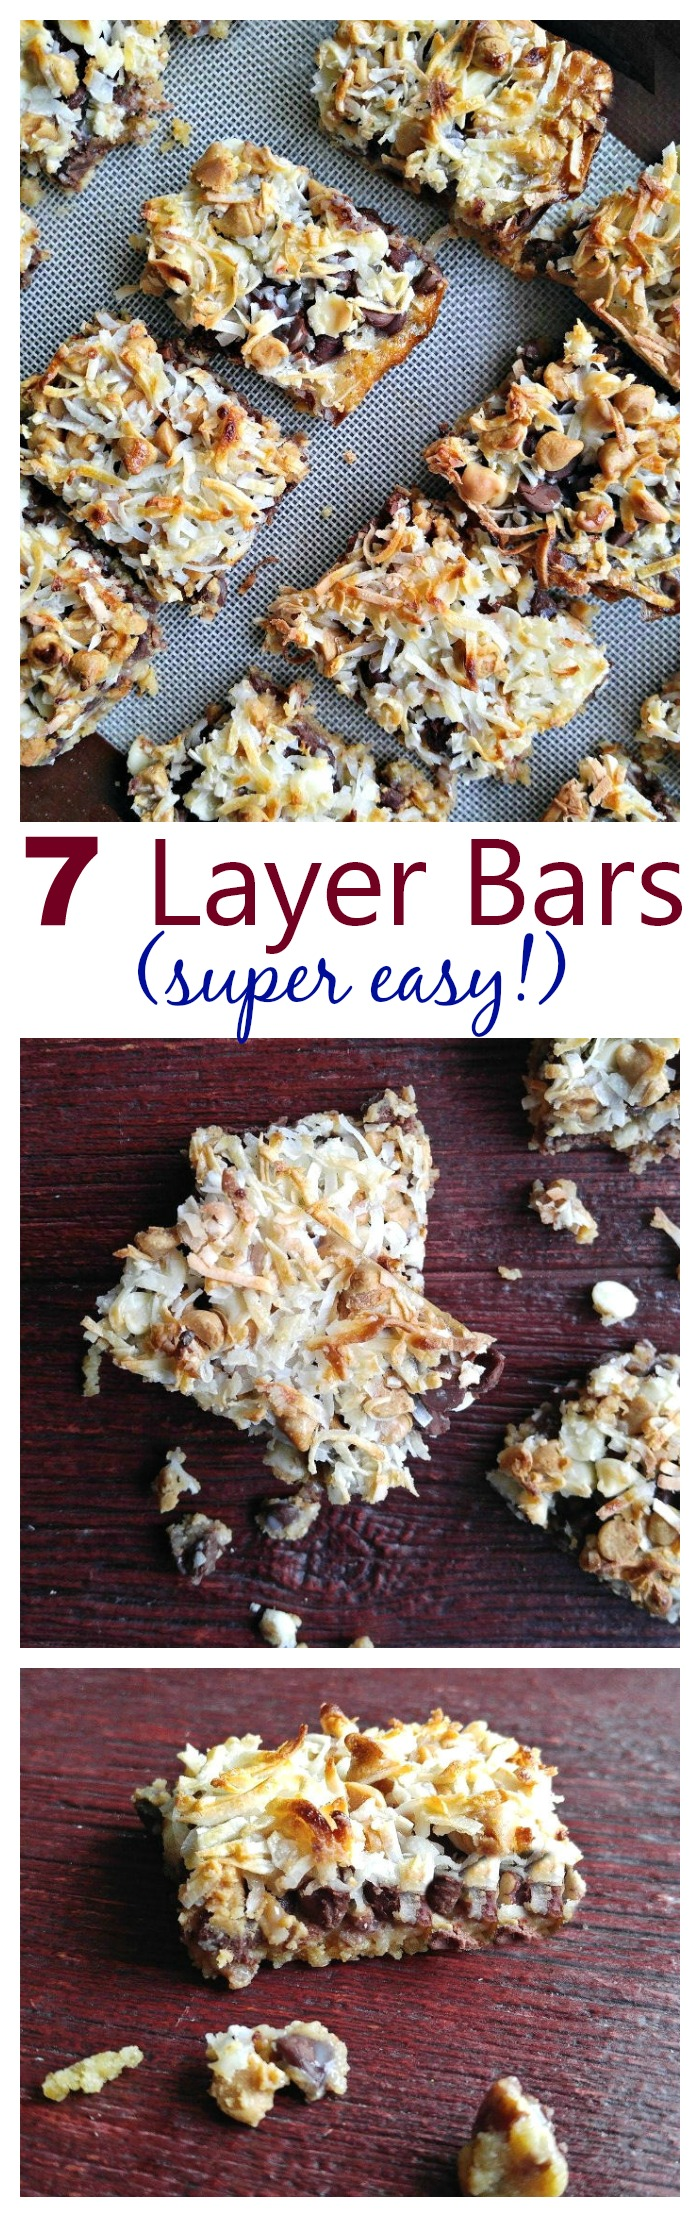 7 Layer Bars - Magic Bars to Tempt Your Sweet Tooth